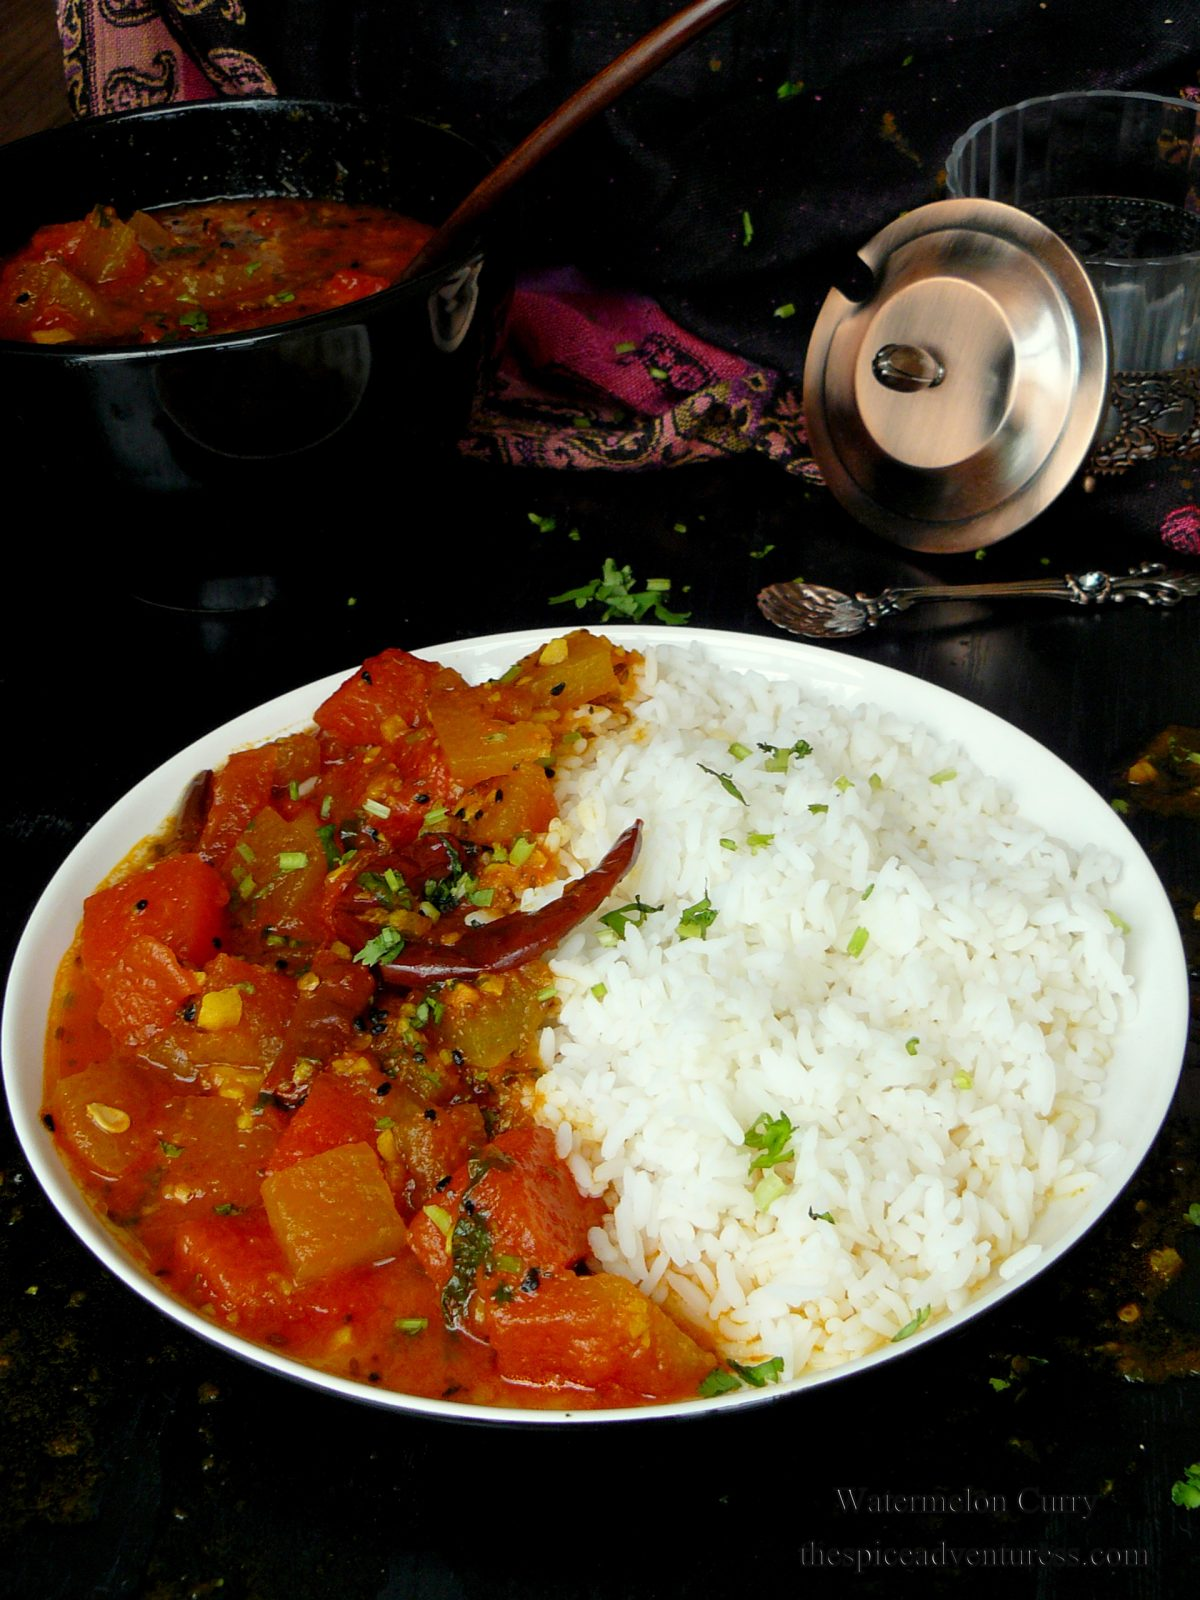 Watermelon Curry - a mildly spiced aromatic curry with watermelon rind and flesh - thespiceadventuress.com